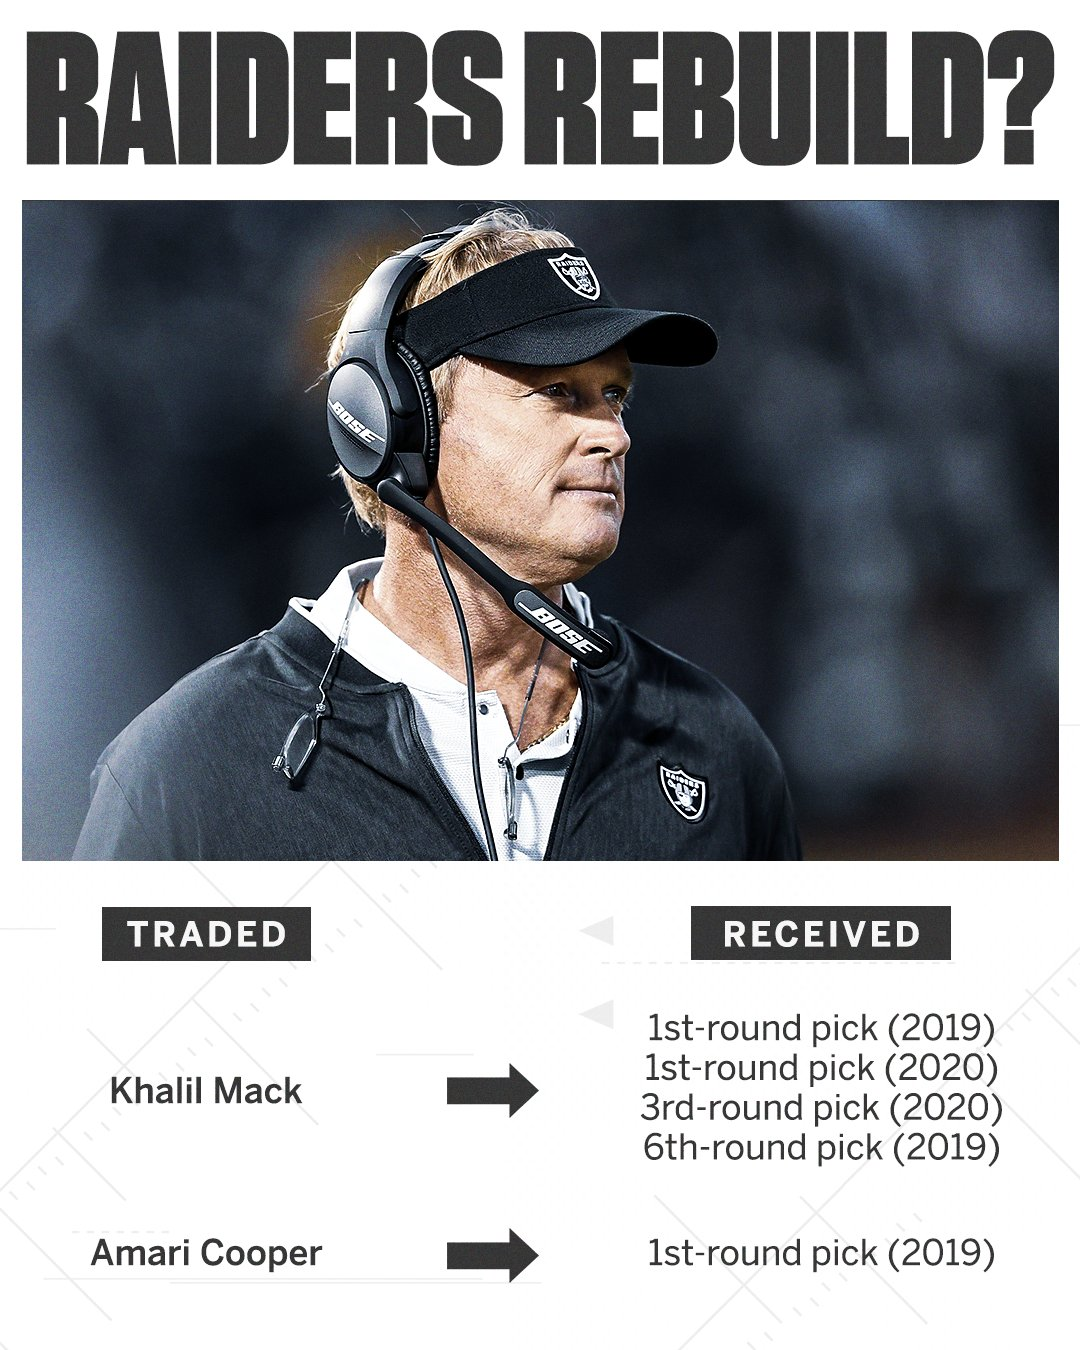 The Raiders now have 3 first-round picks in 2019.   How would you grade the trades? https://t.co/06EwQvzyfh